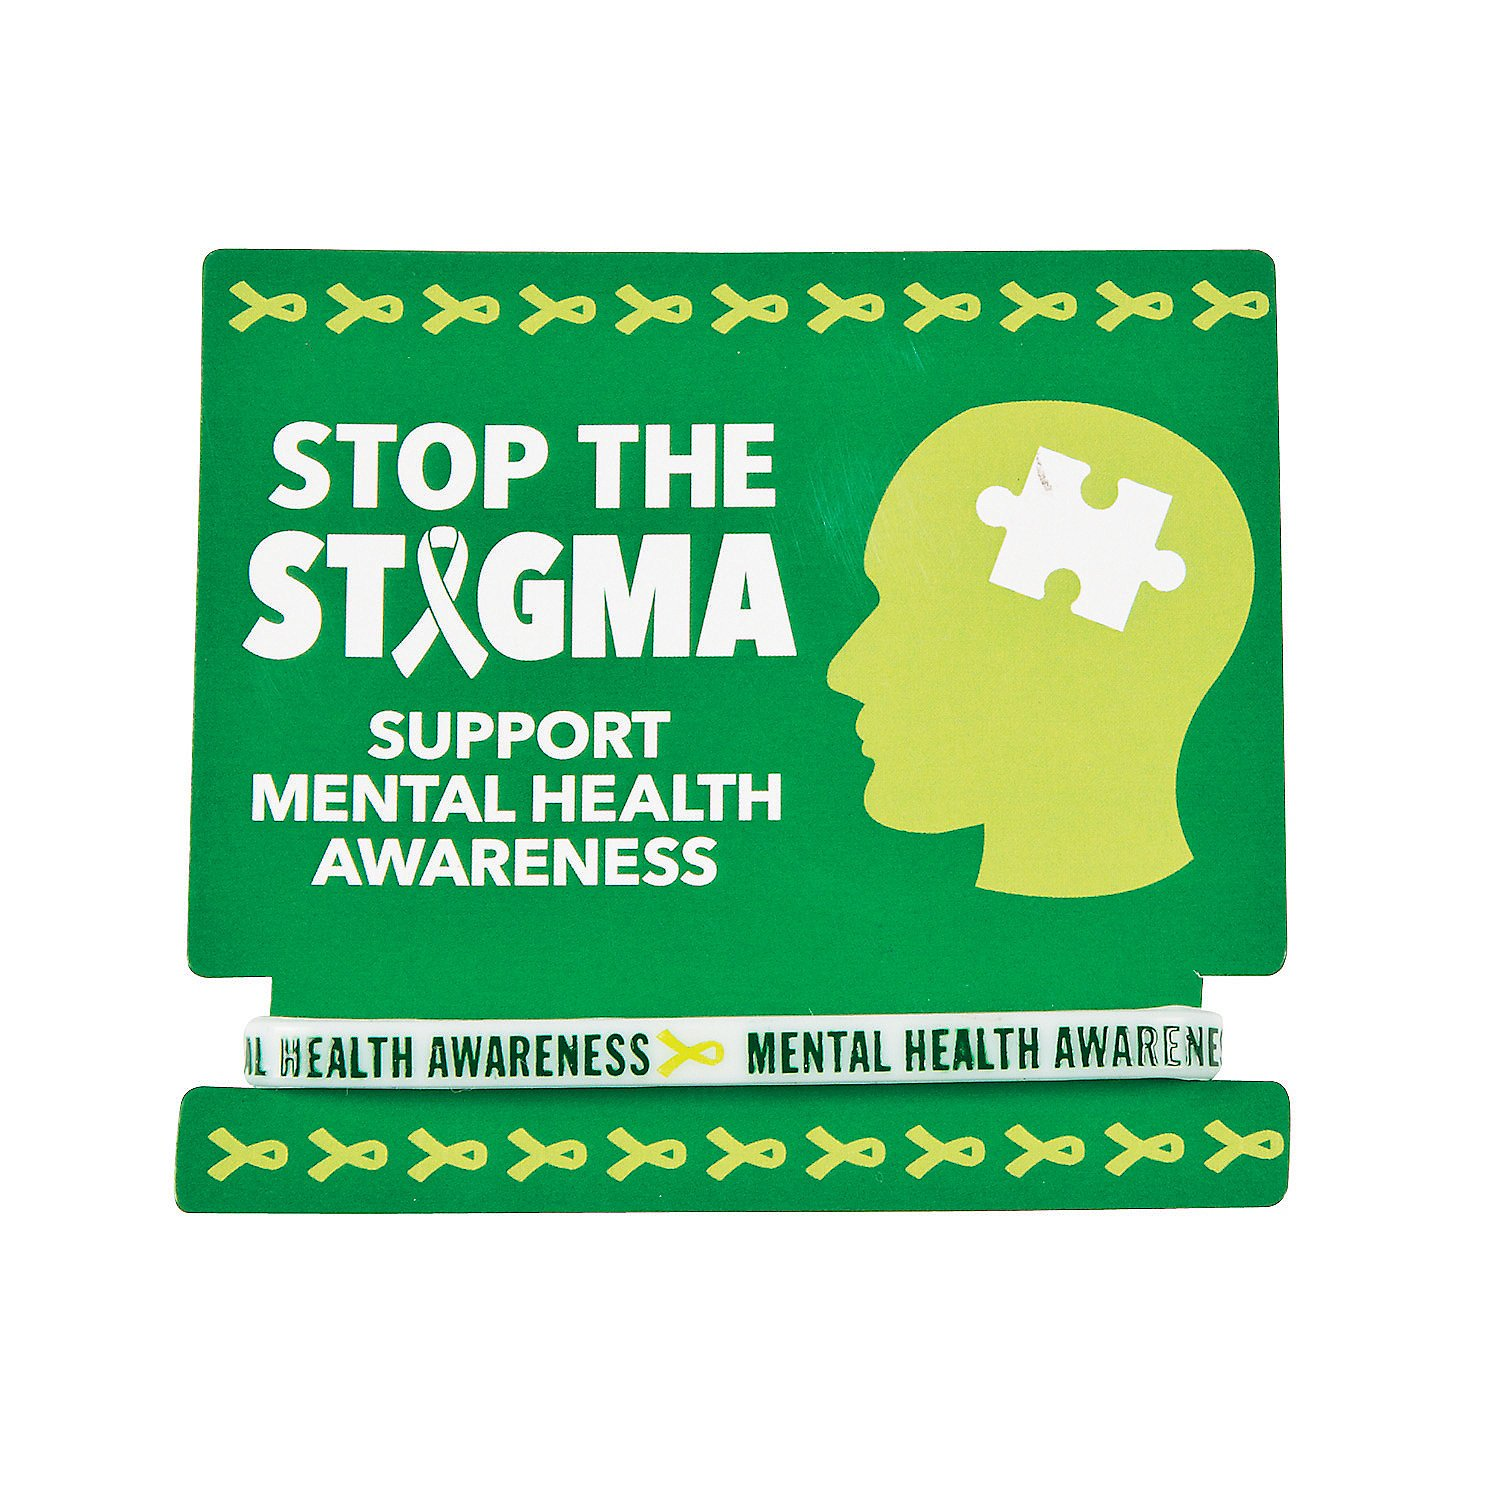 health category mhaw mental tips rgb bracelet awareness